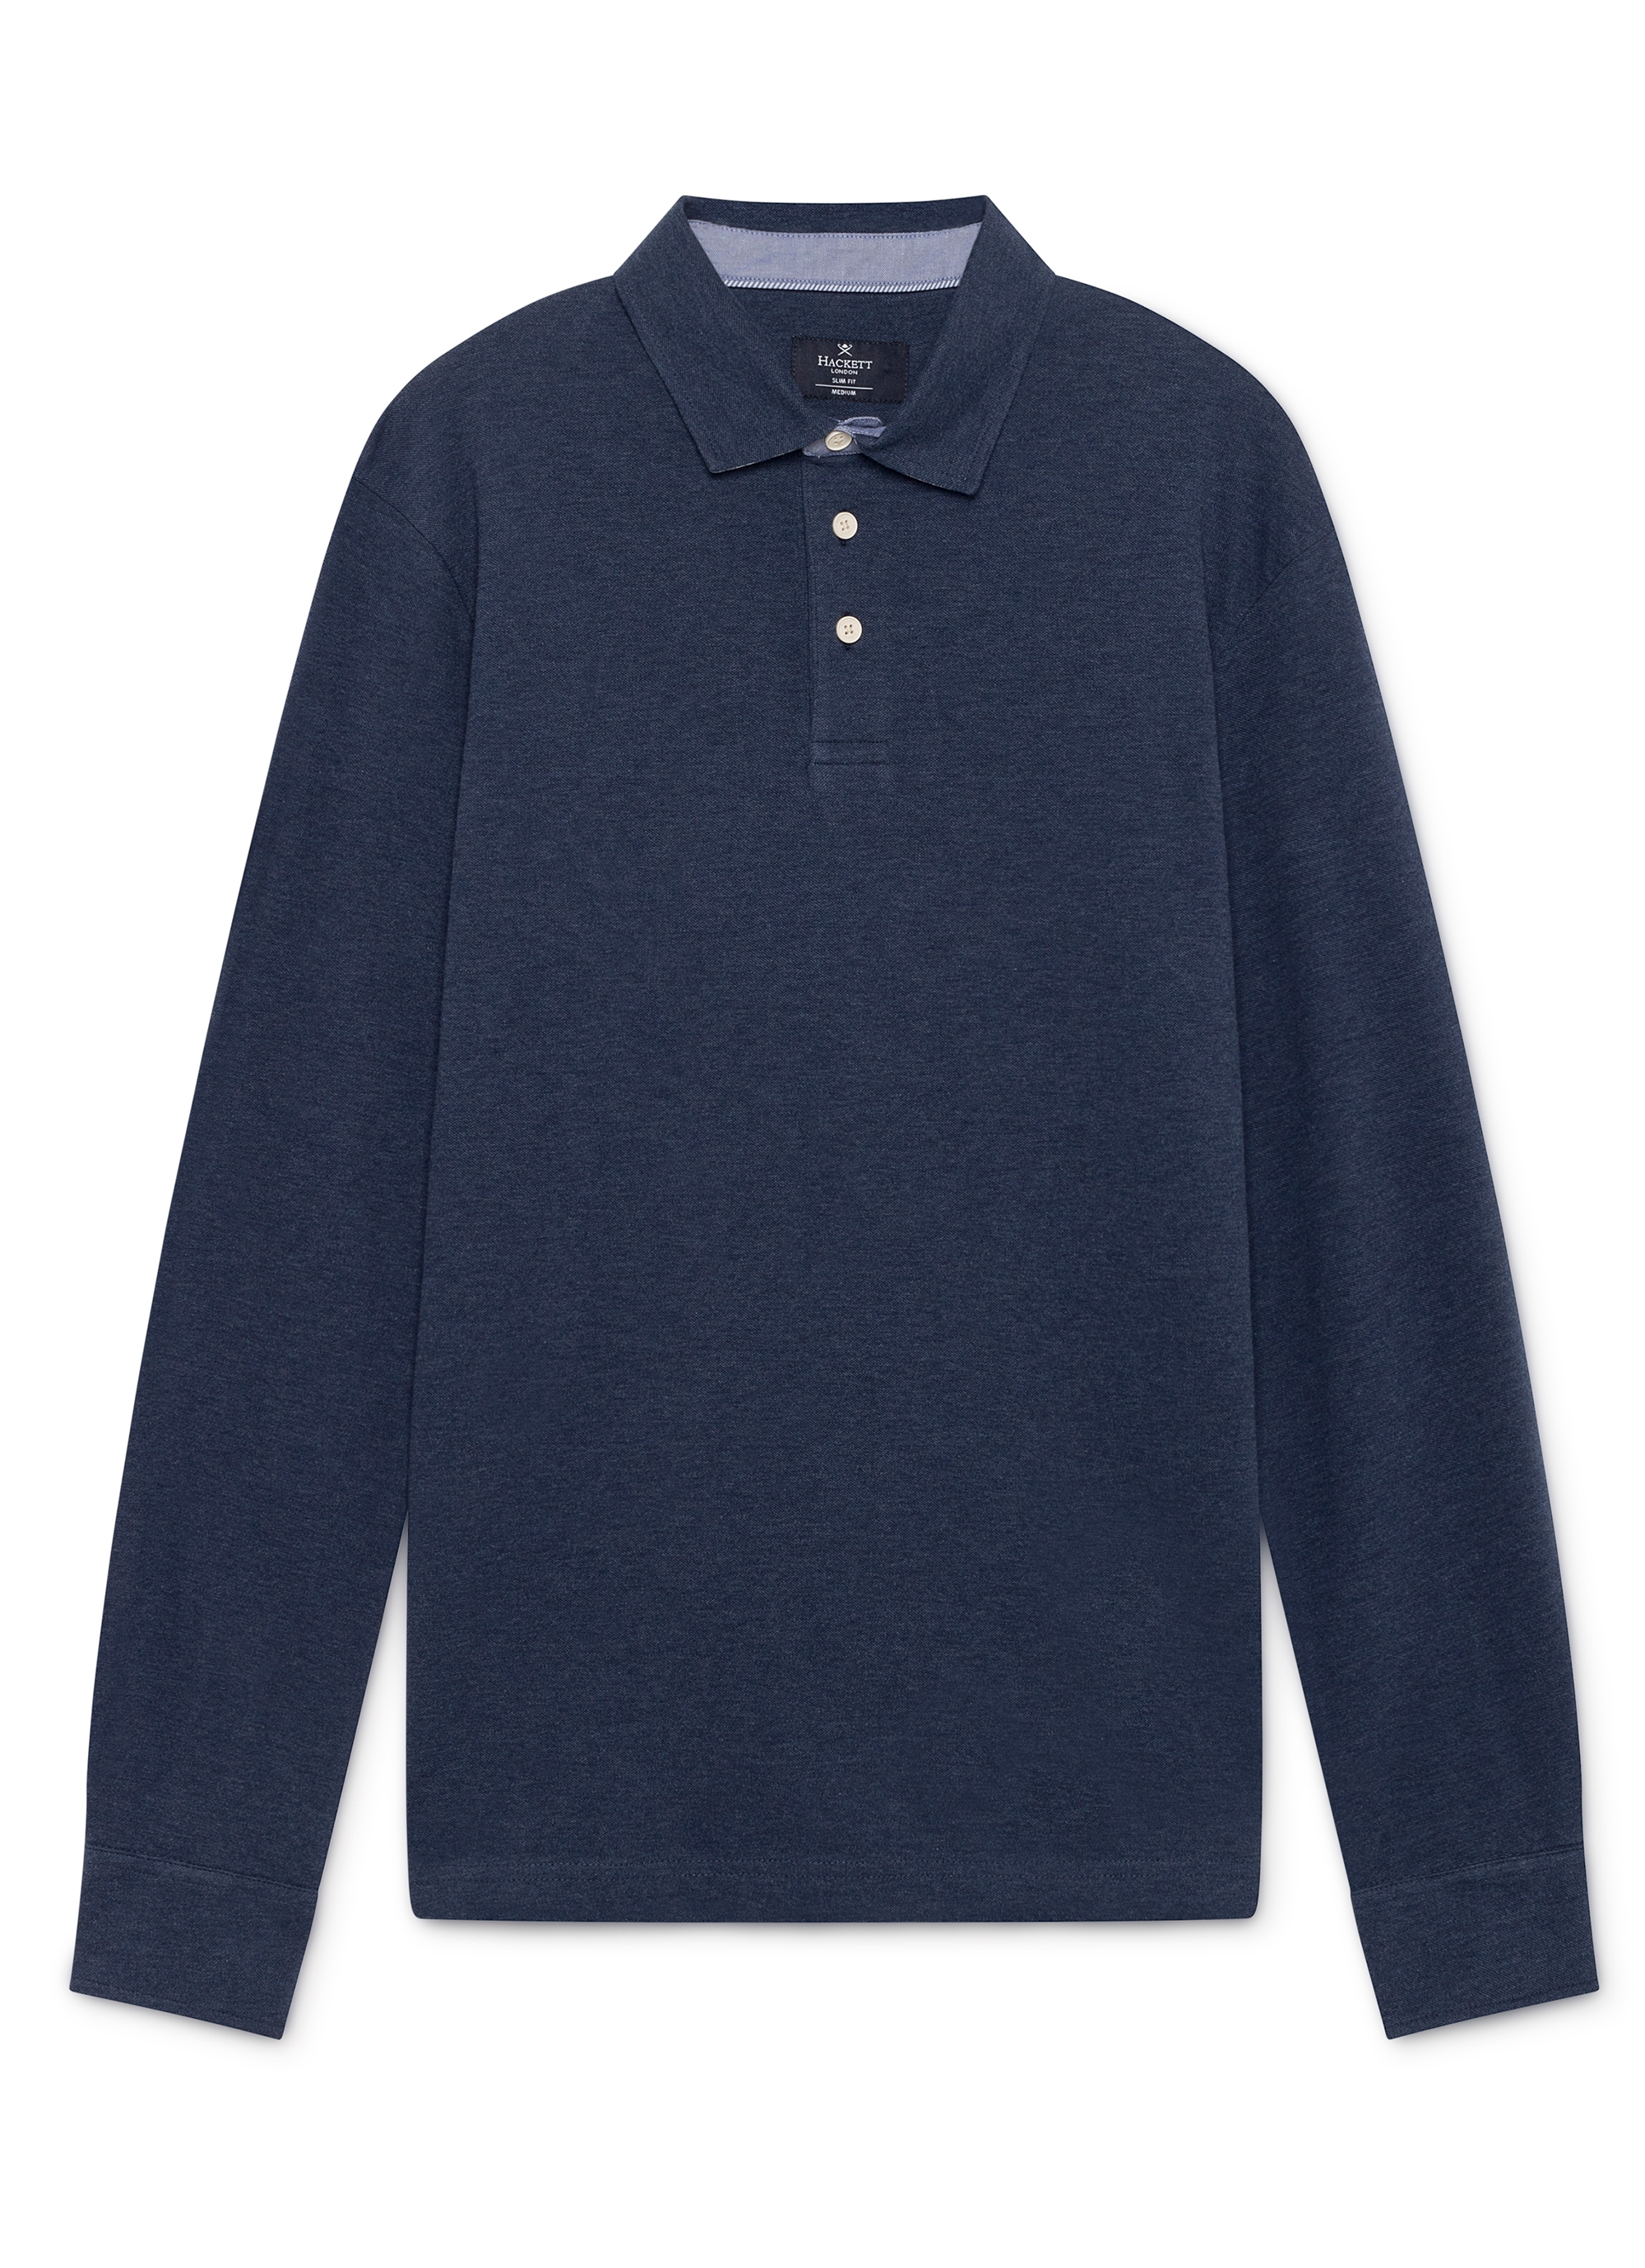 9f10e4f9 Men's Designer Long Sleeve Polo Shirts - Harvey Nichols